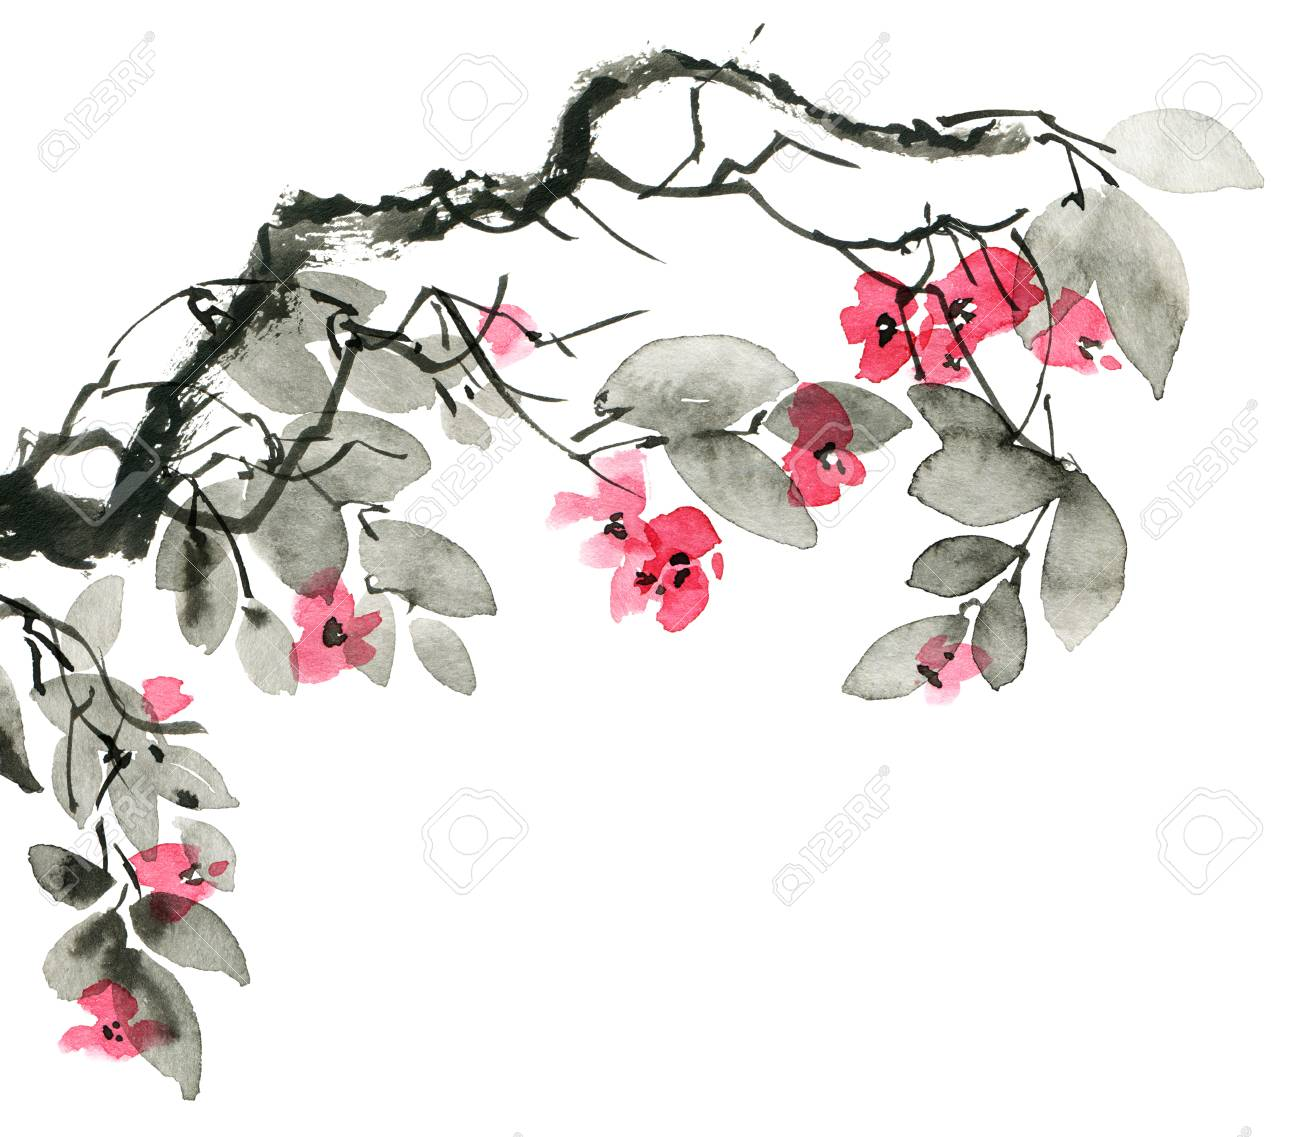 Watercolor And Ink Illustration Of Blossom Tree Branch With Flowers Stock Photo Picture And Royalty Free Image Image 120937897